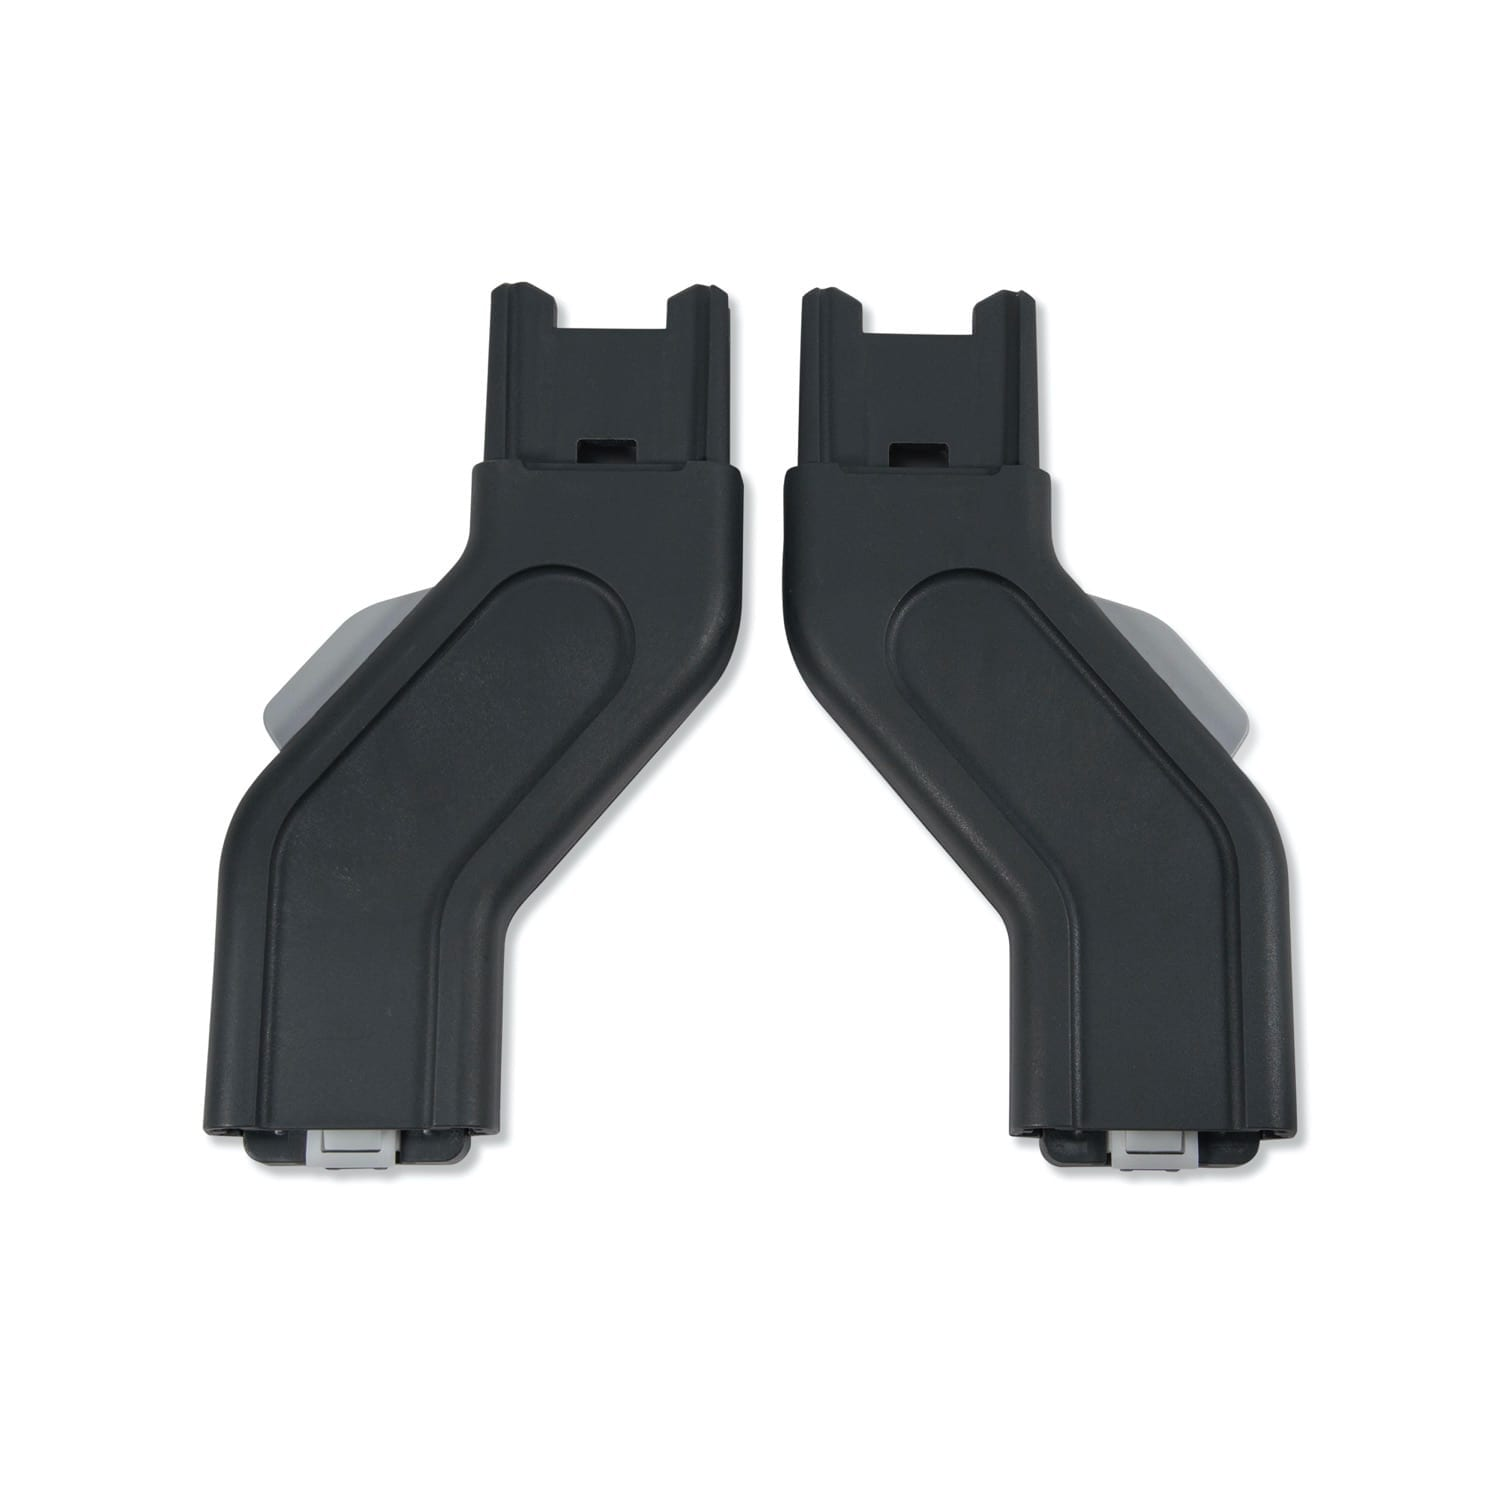 UPPABaby VISTA Upper Adapter   2 pack product image